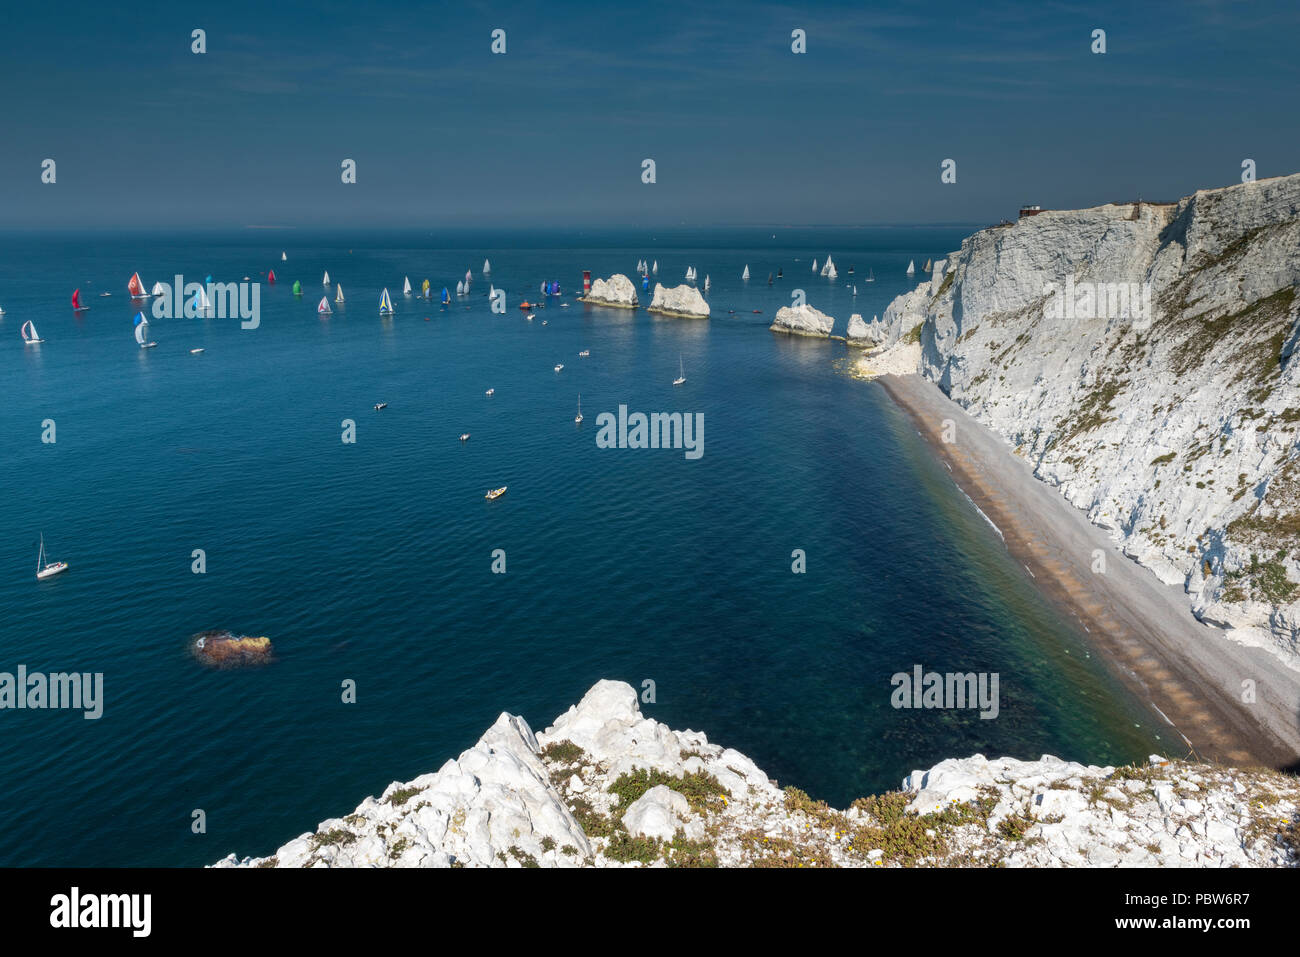 the round the island yacht race passing the needles and cliffs on the isle of wight.on a hot summers day. - Stock Image